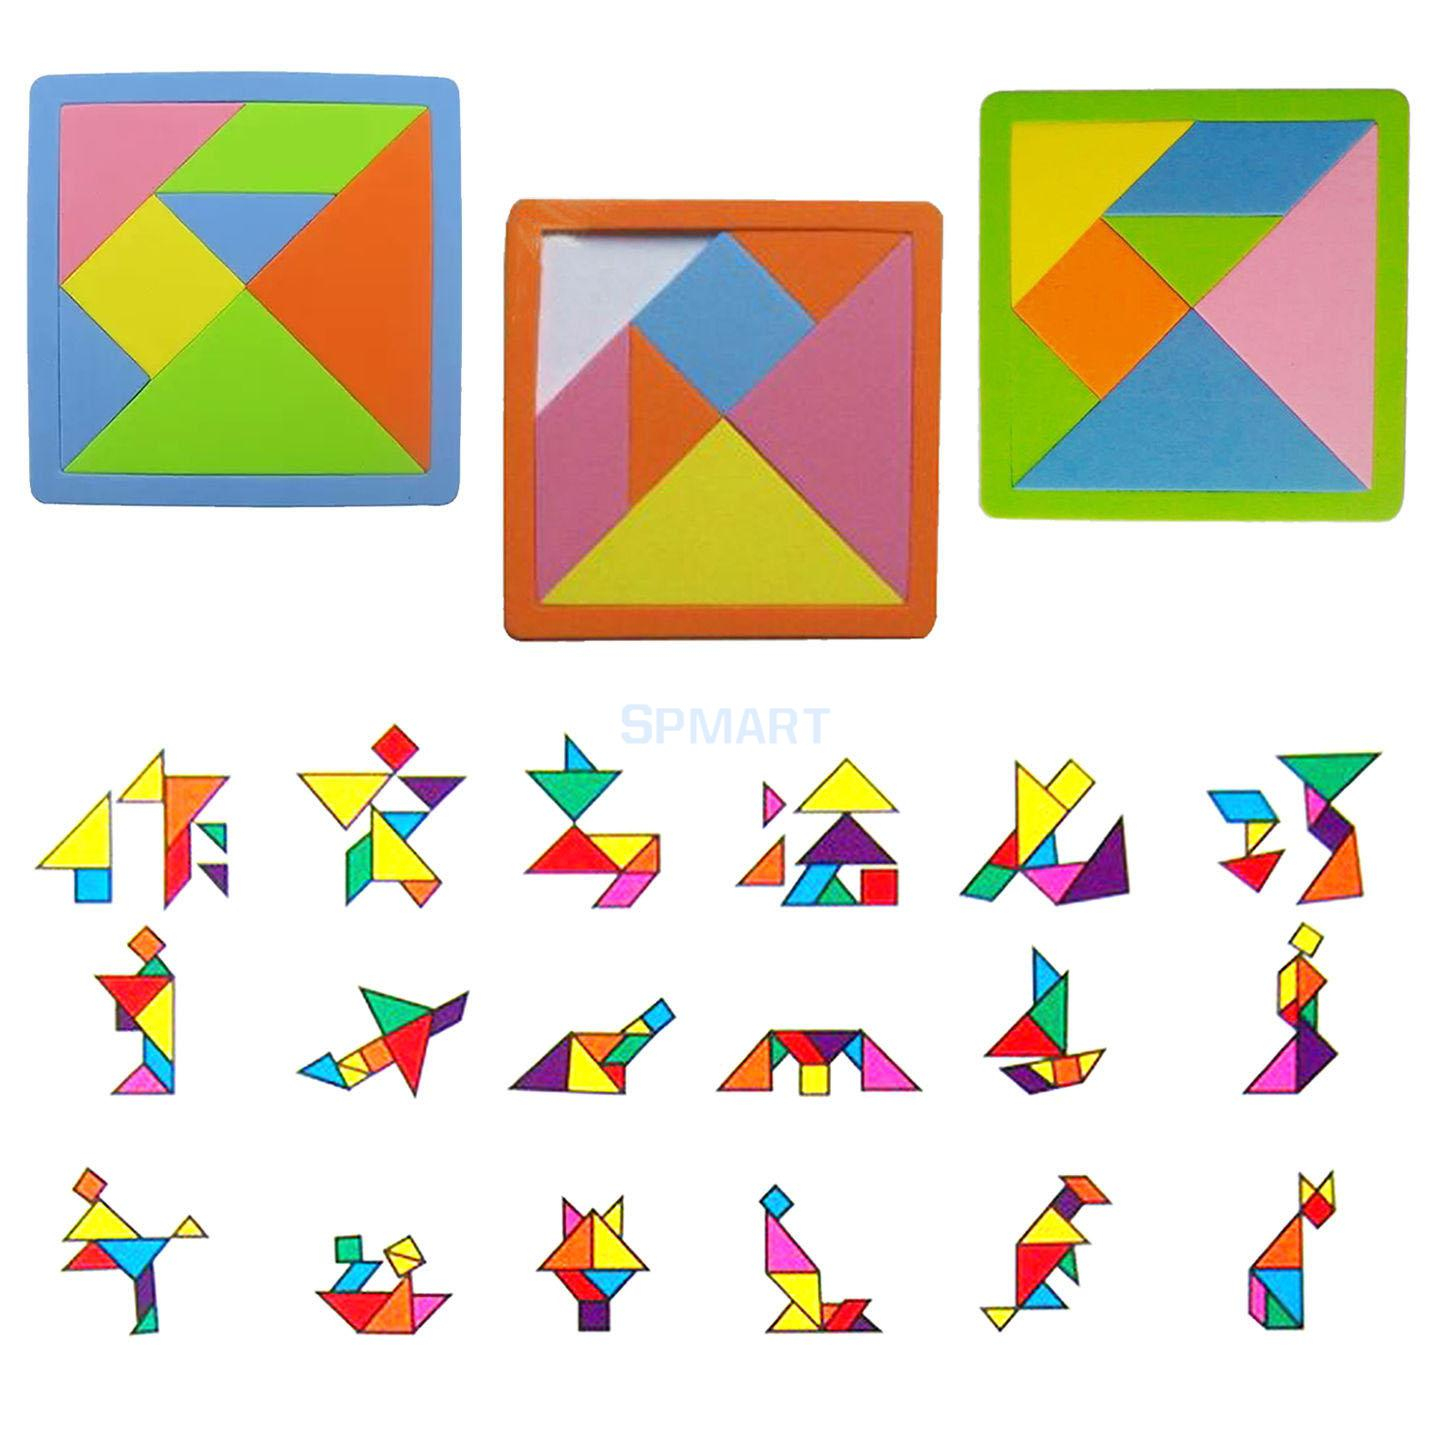 Us $1.61 21% Off|7 Pieces Eva Foam Tangram Brain Educational Teaser Puzzle  Game Kid Toys-In Puzzles From Toys & Hobbies On Aliexpress | Alibaba - 7 Piece Tangram Puzzle Printable